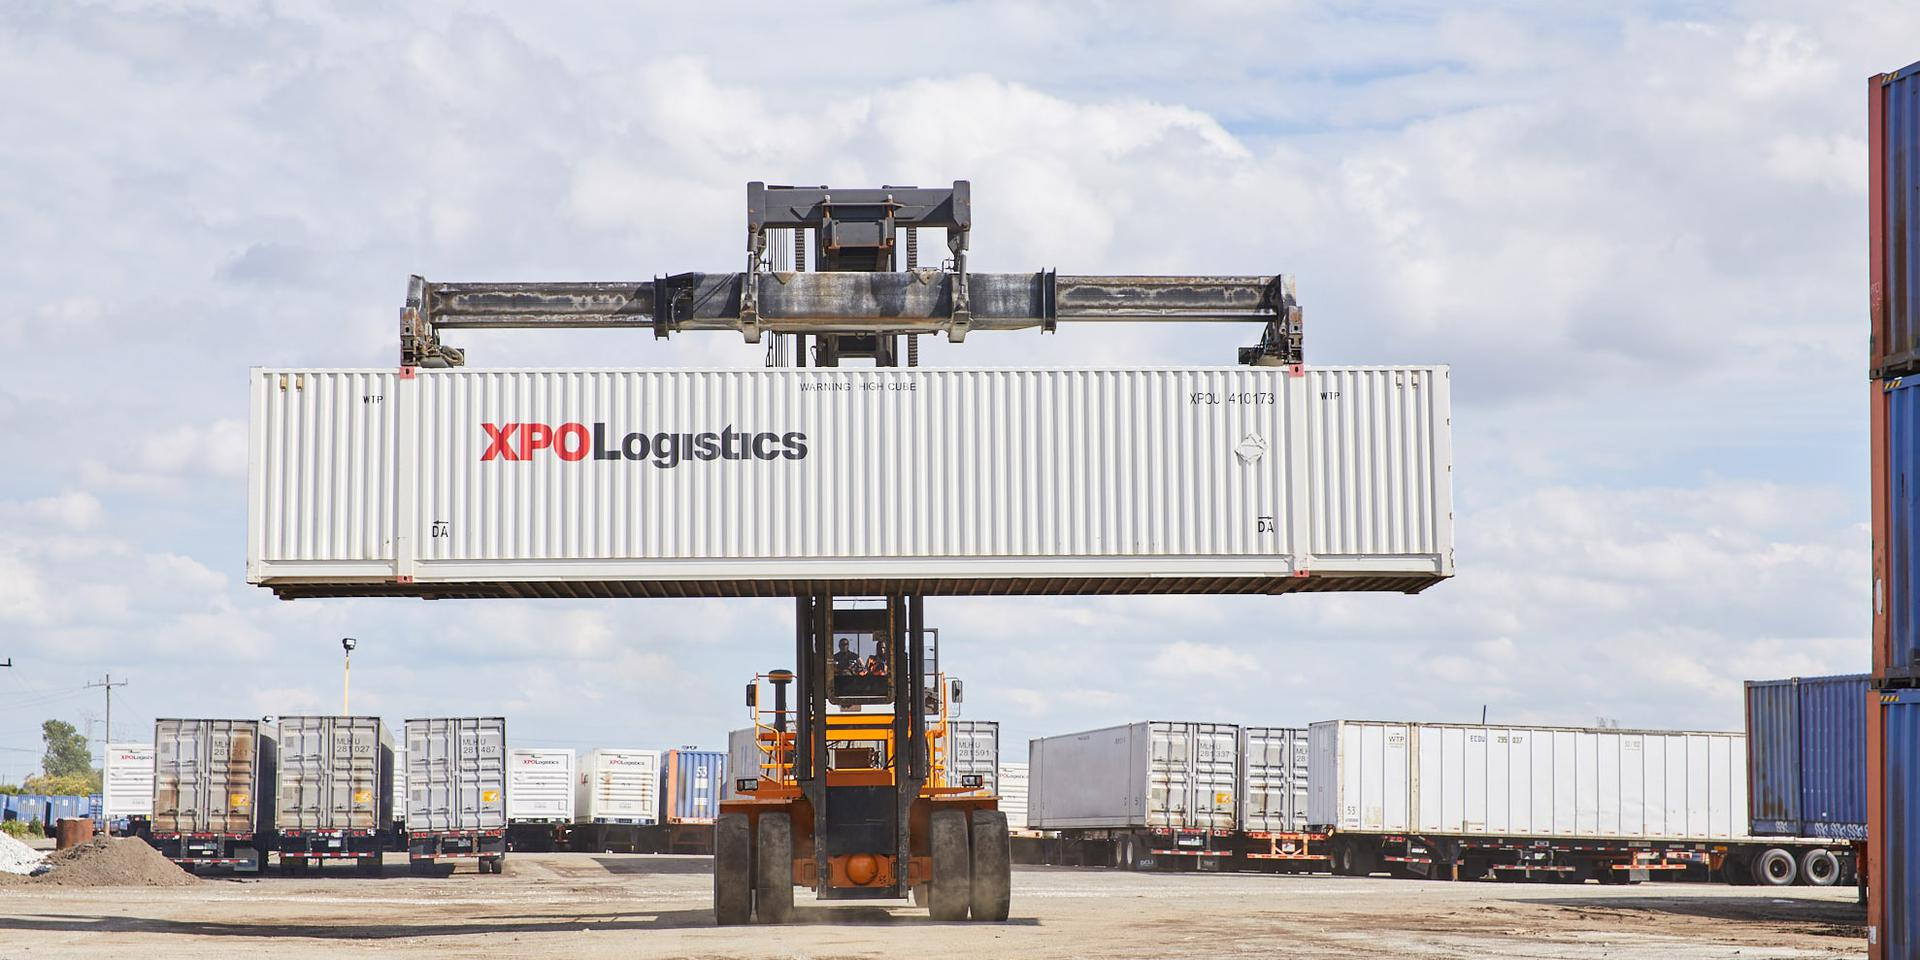 Lifting XPO container